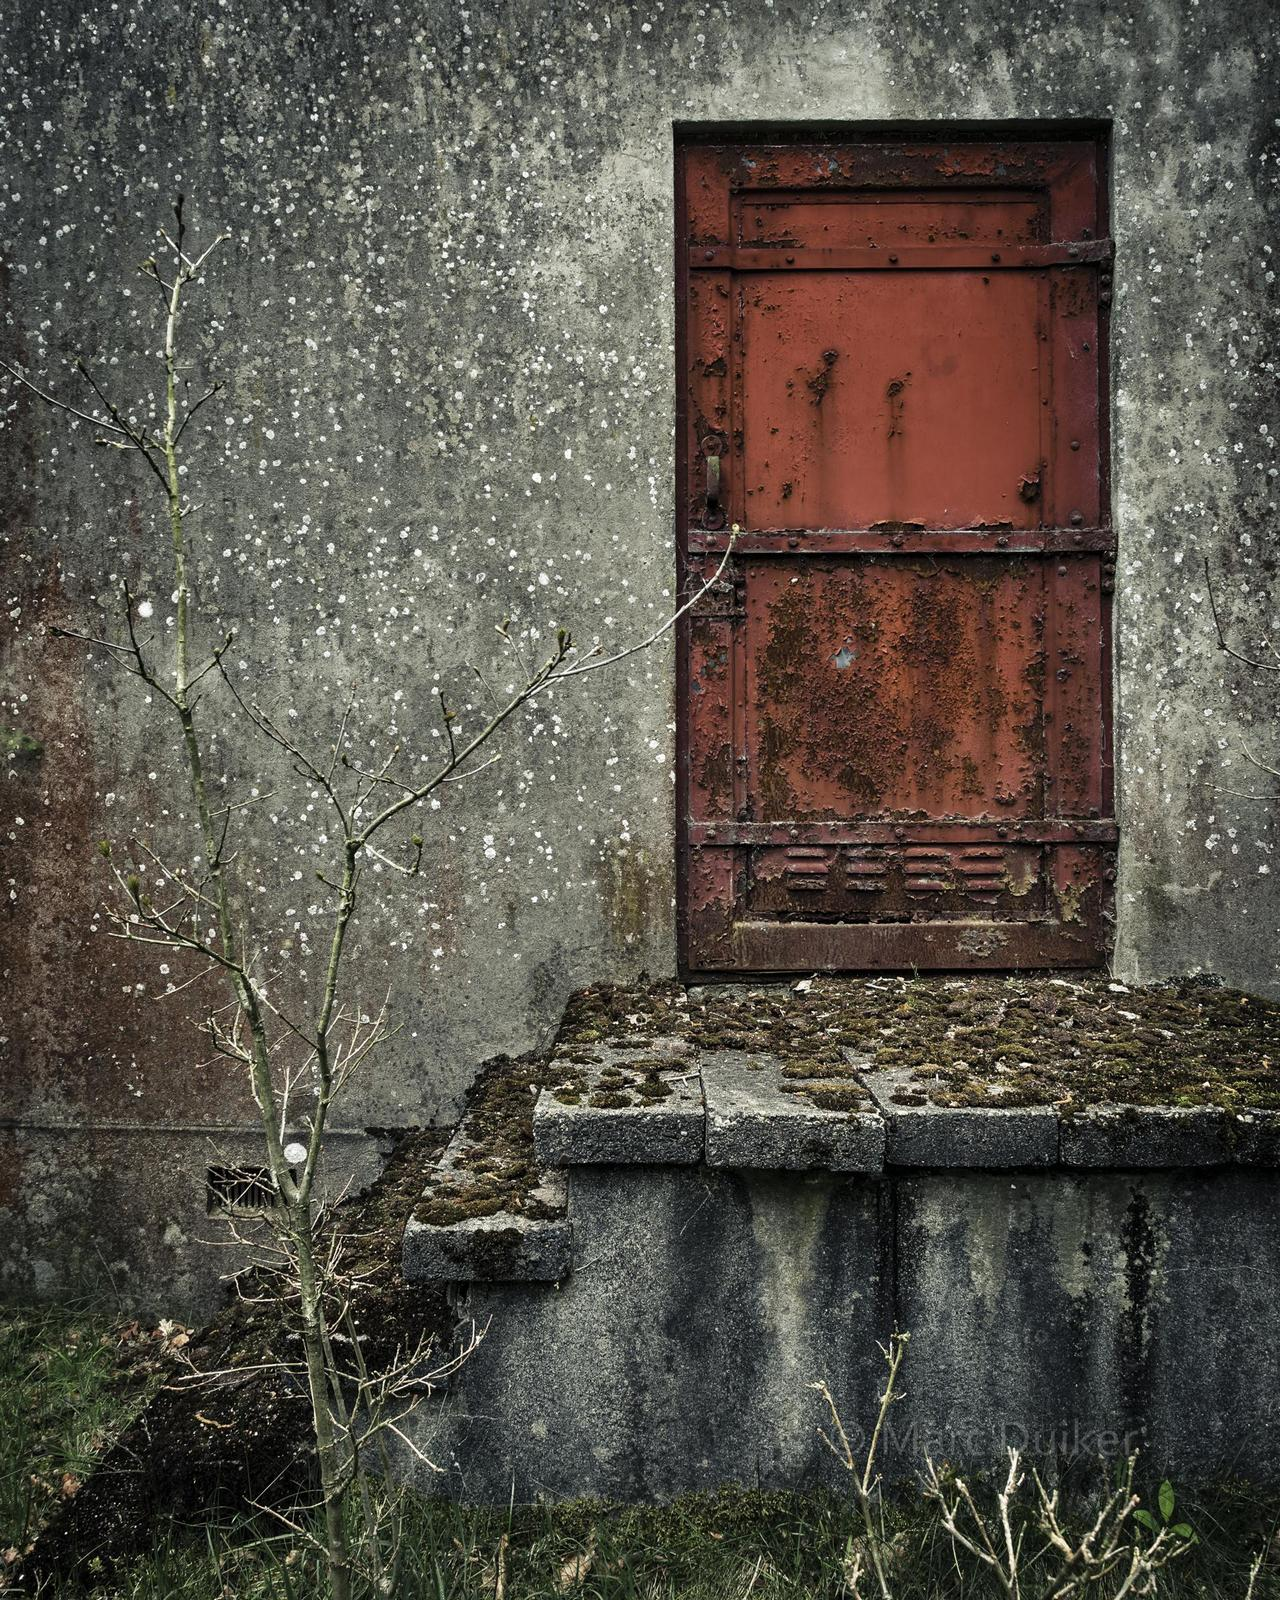 'I see a red door...' © by Marc Duiker